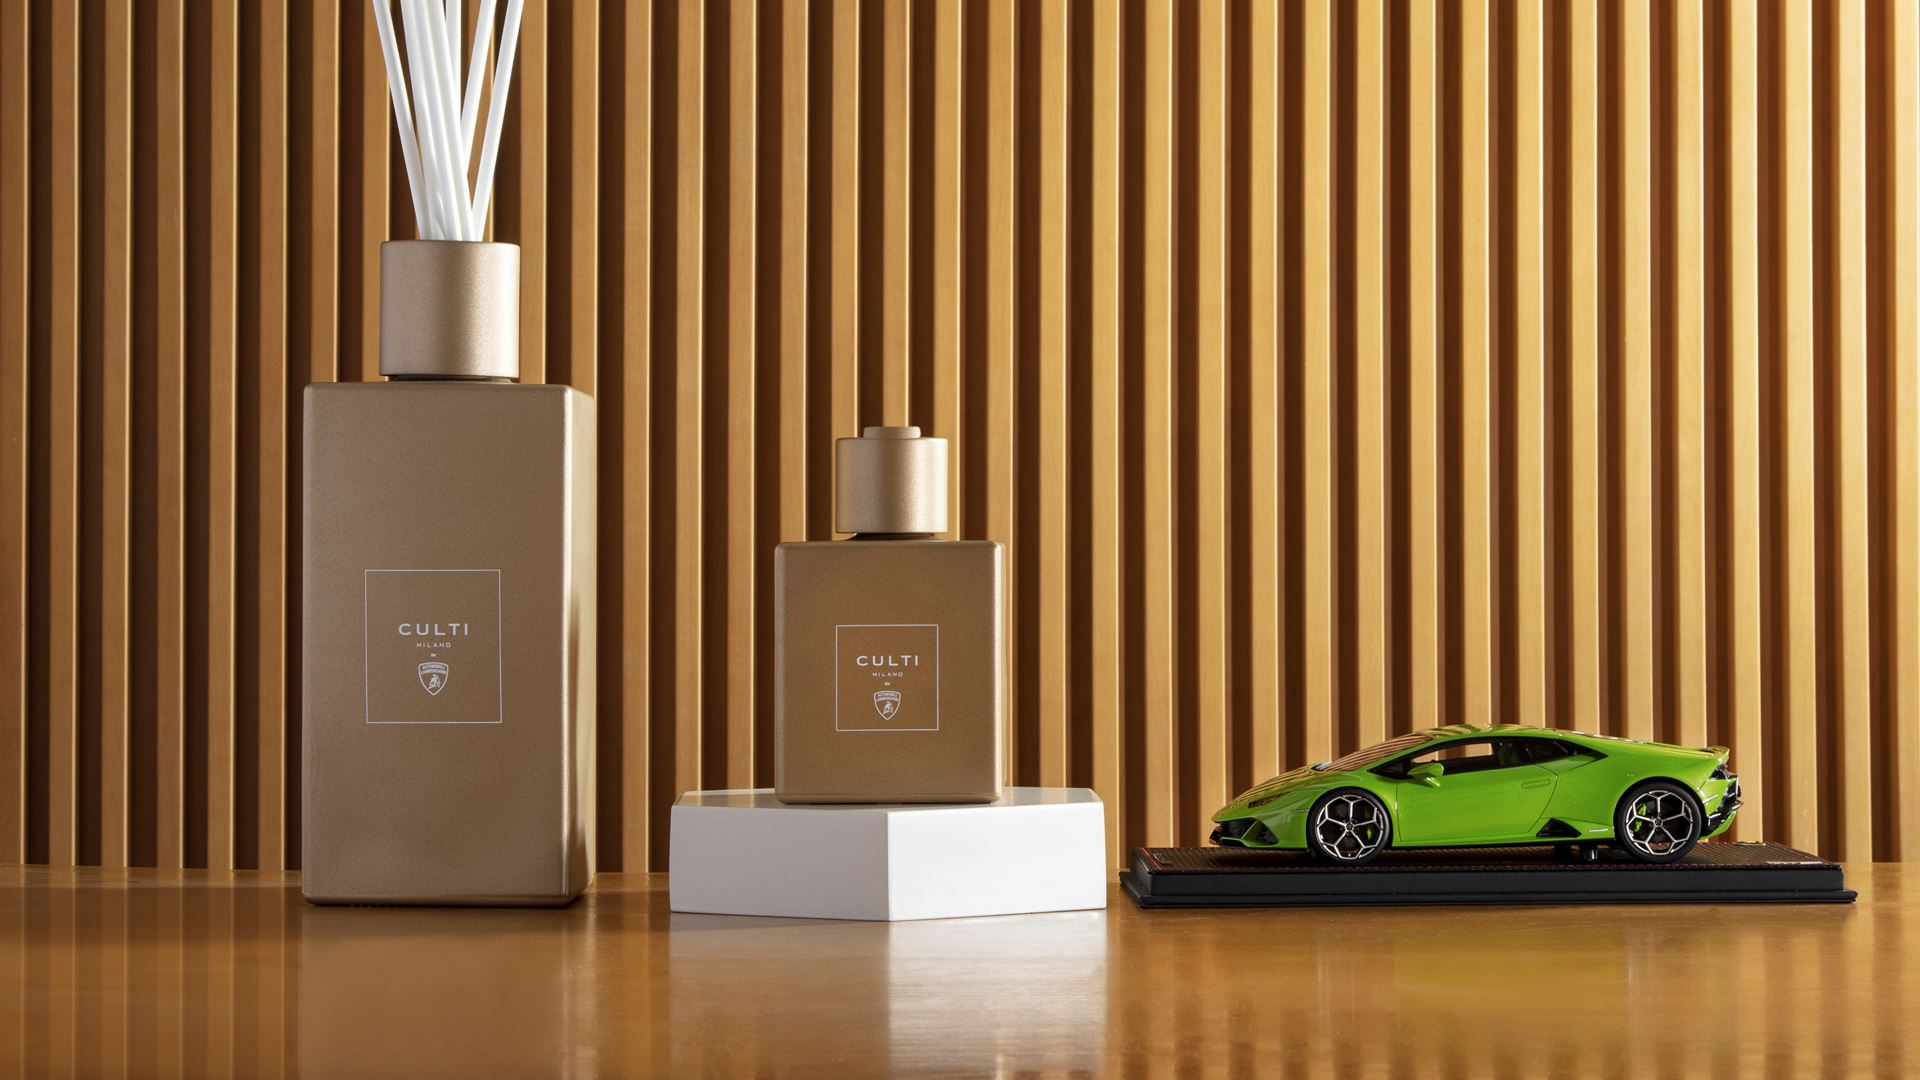 The first olfactory Automobili Lamborghini branding project signed by Culti Milano - Image 4